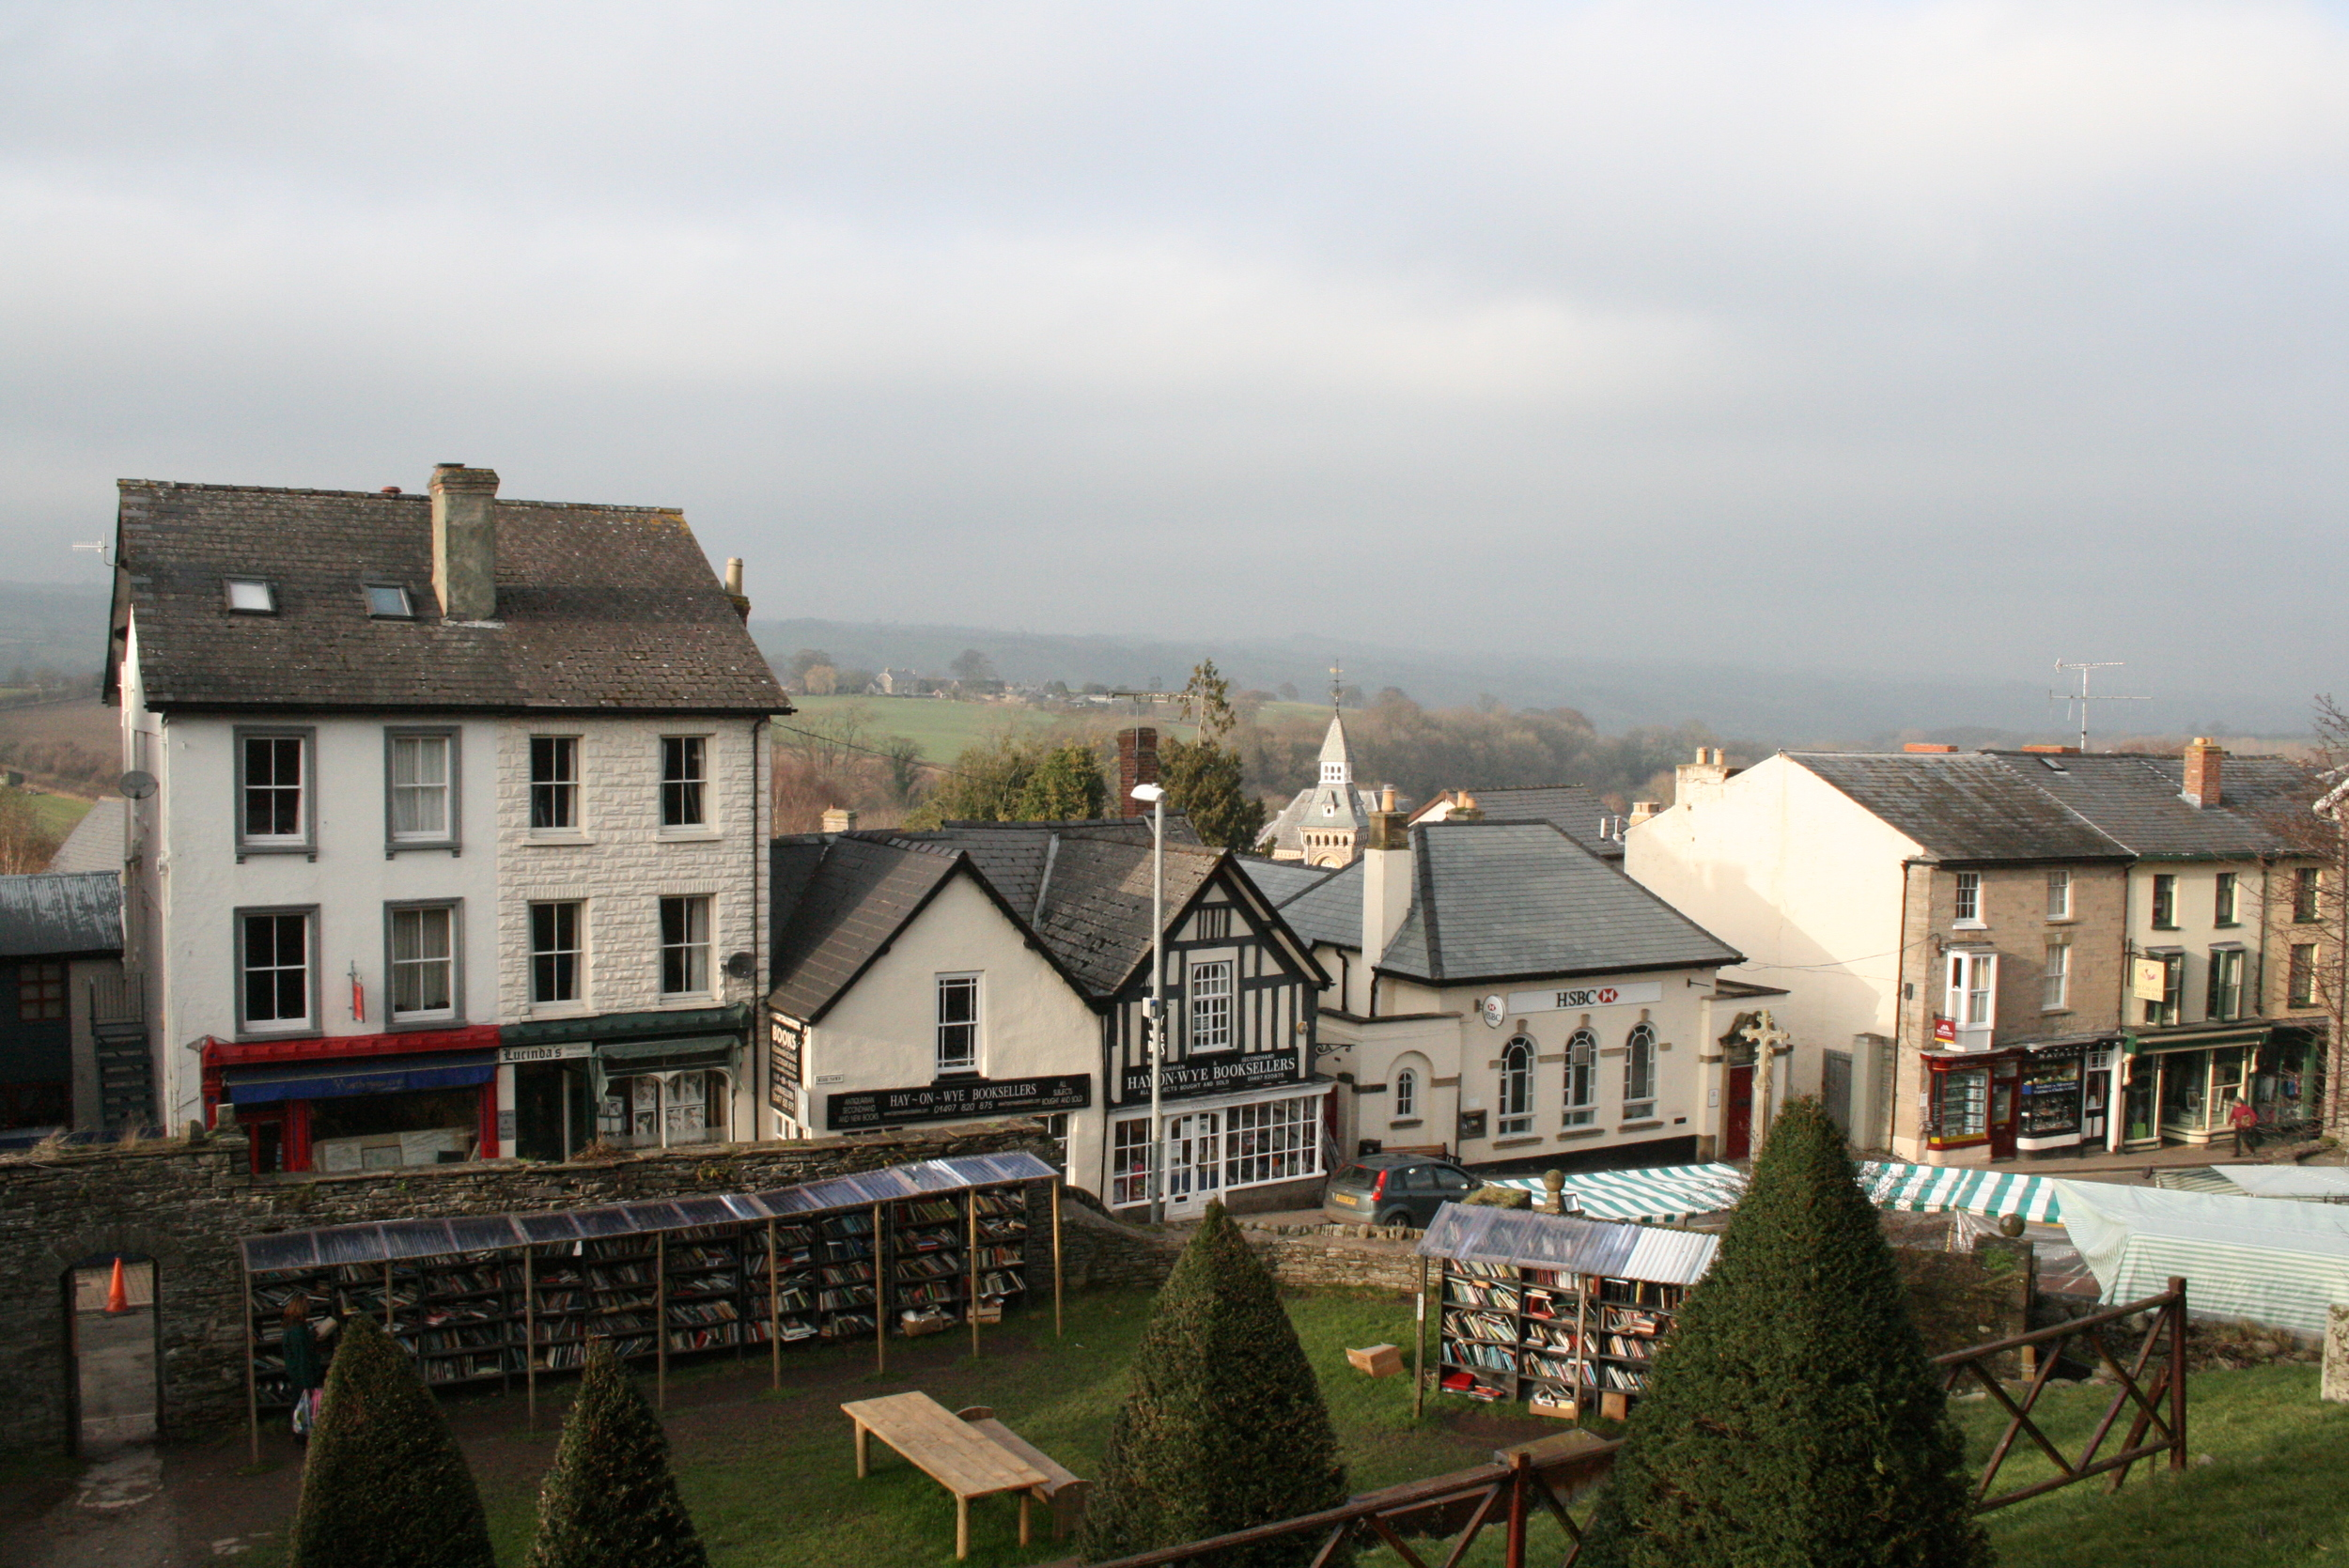 Hay-On-Wye: The book town